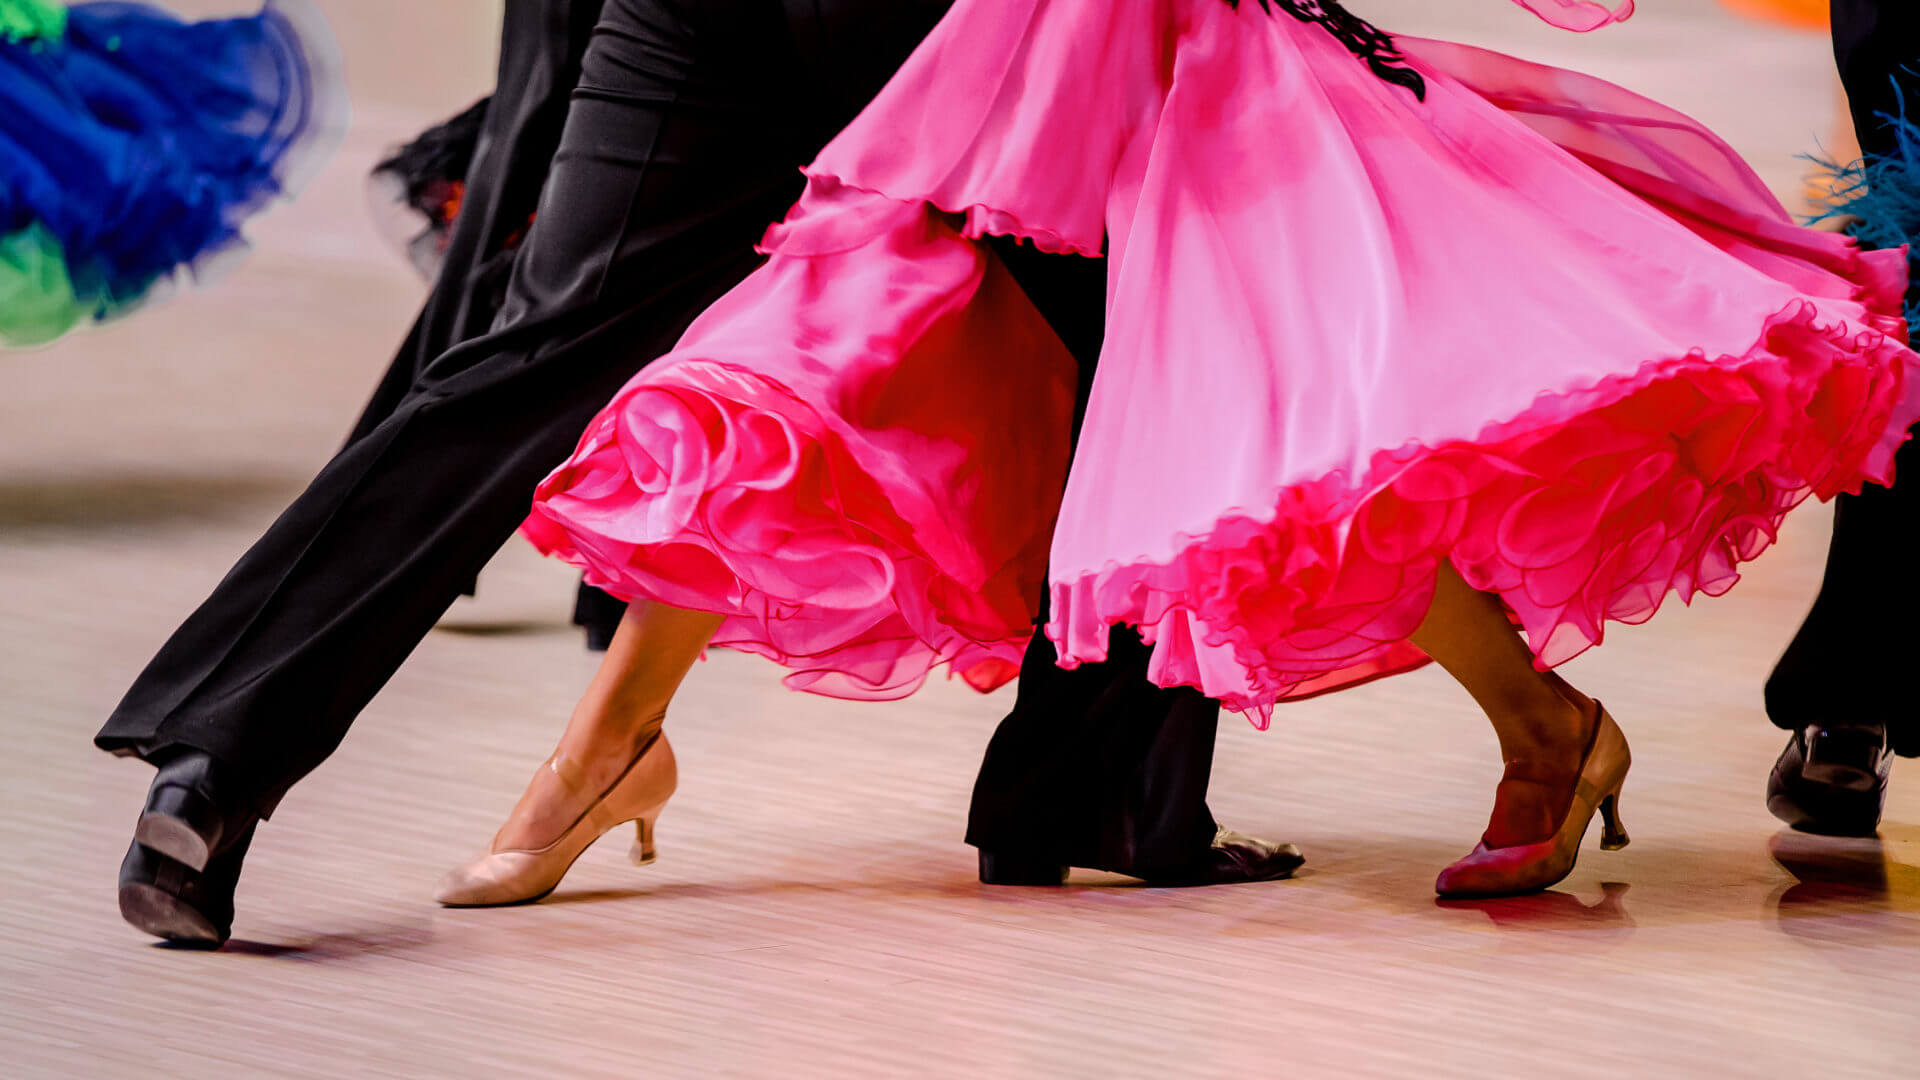 Picture of a ballroom dance couple's footwork in Tango